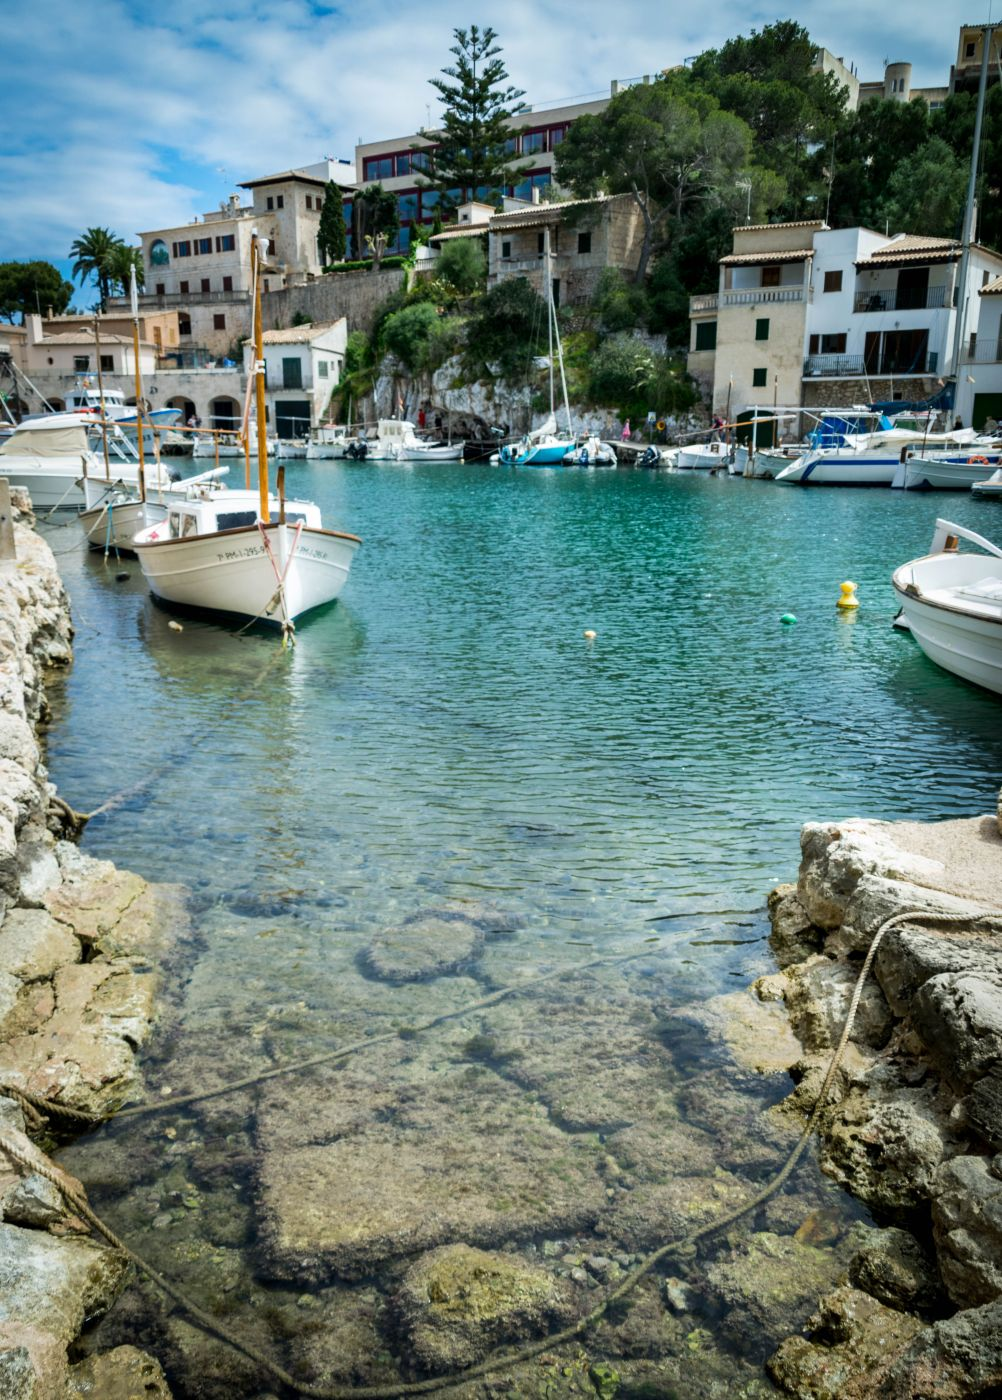 Small harbor of Cala Figuera, Mallorca, Spain